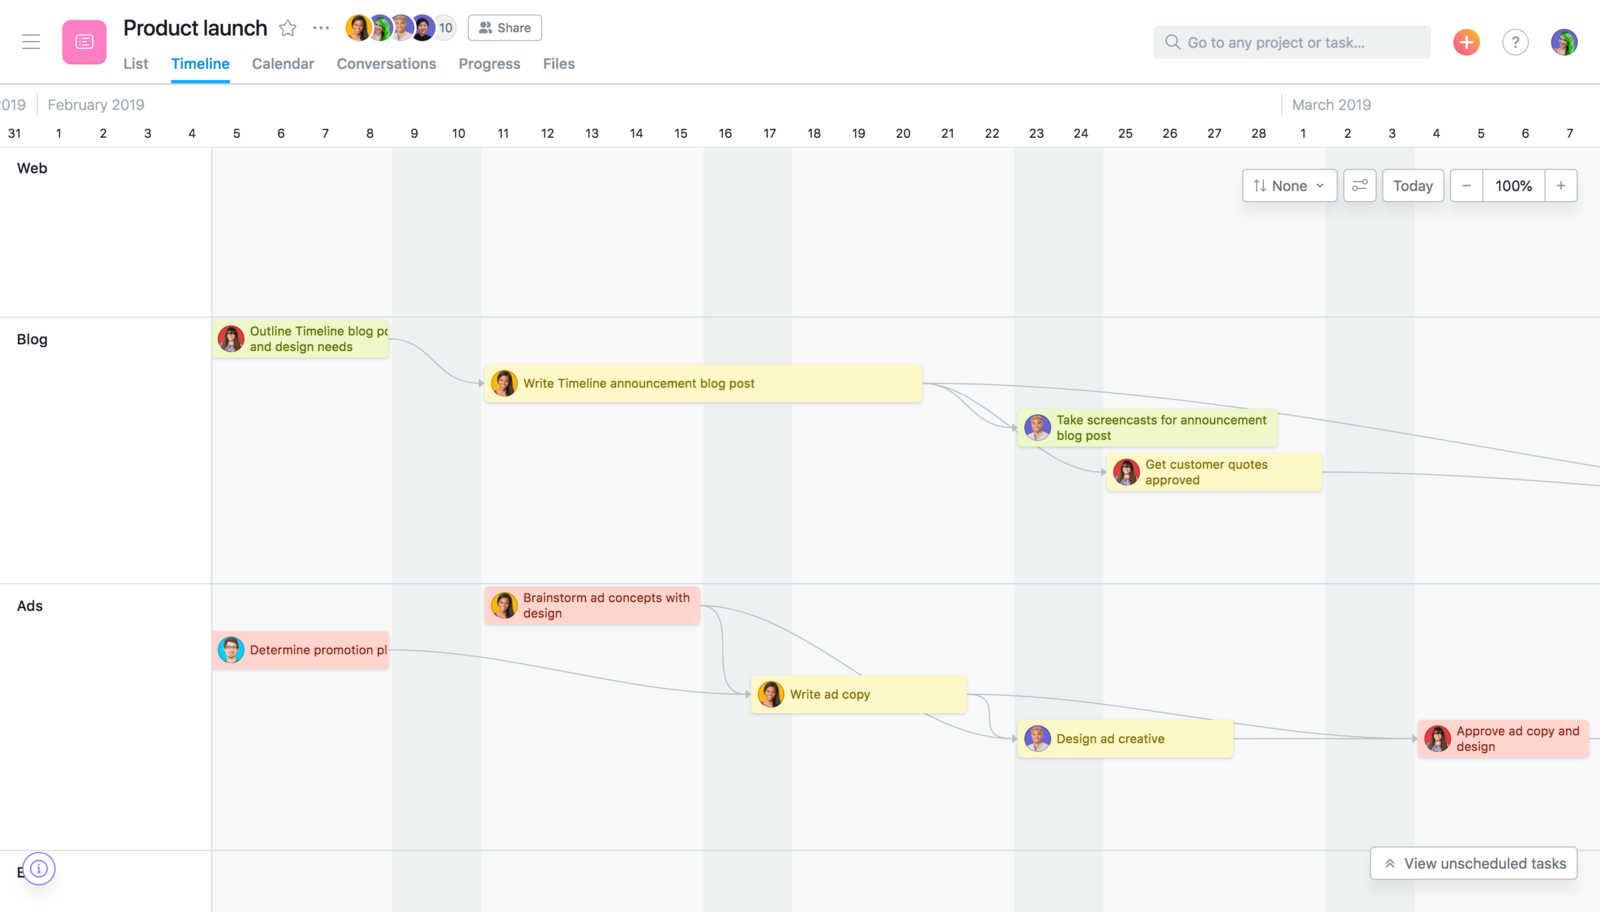 Timeline in Asana is like a Gantt-chart view, but better because it's connected to all your work. Use it to plan and manage your deadline-bound projects